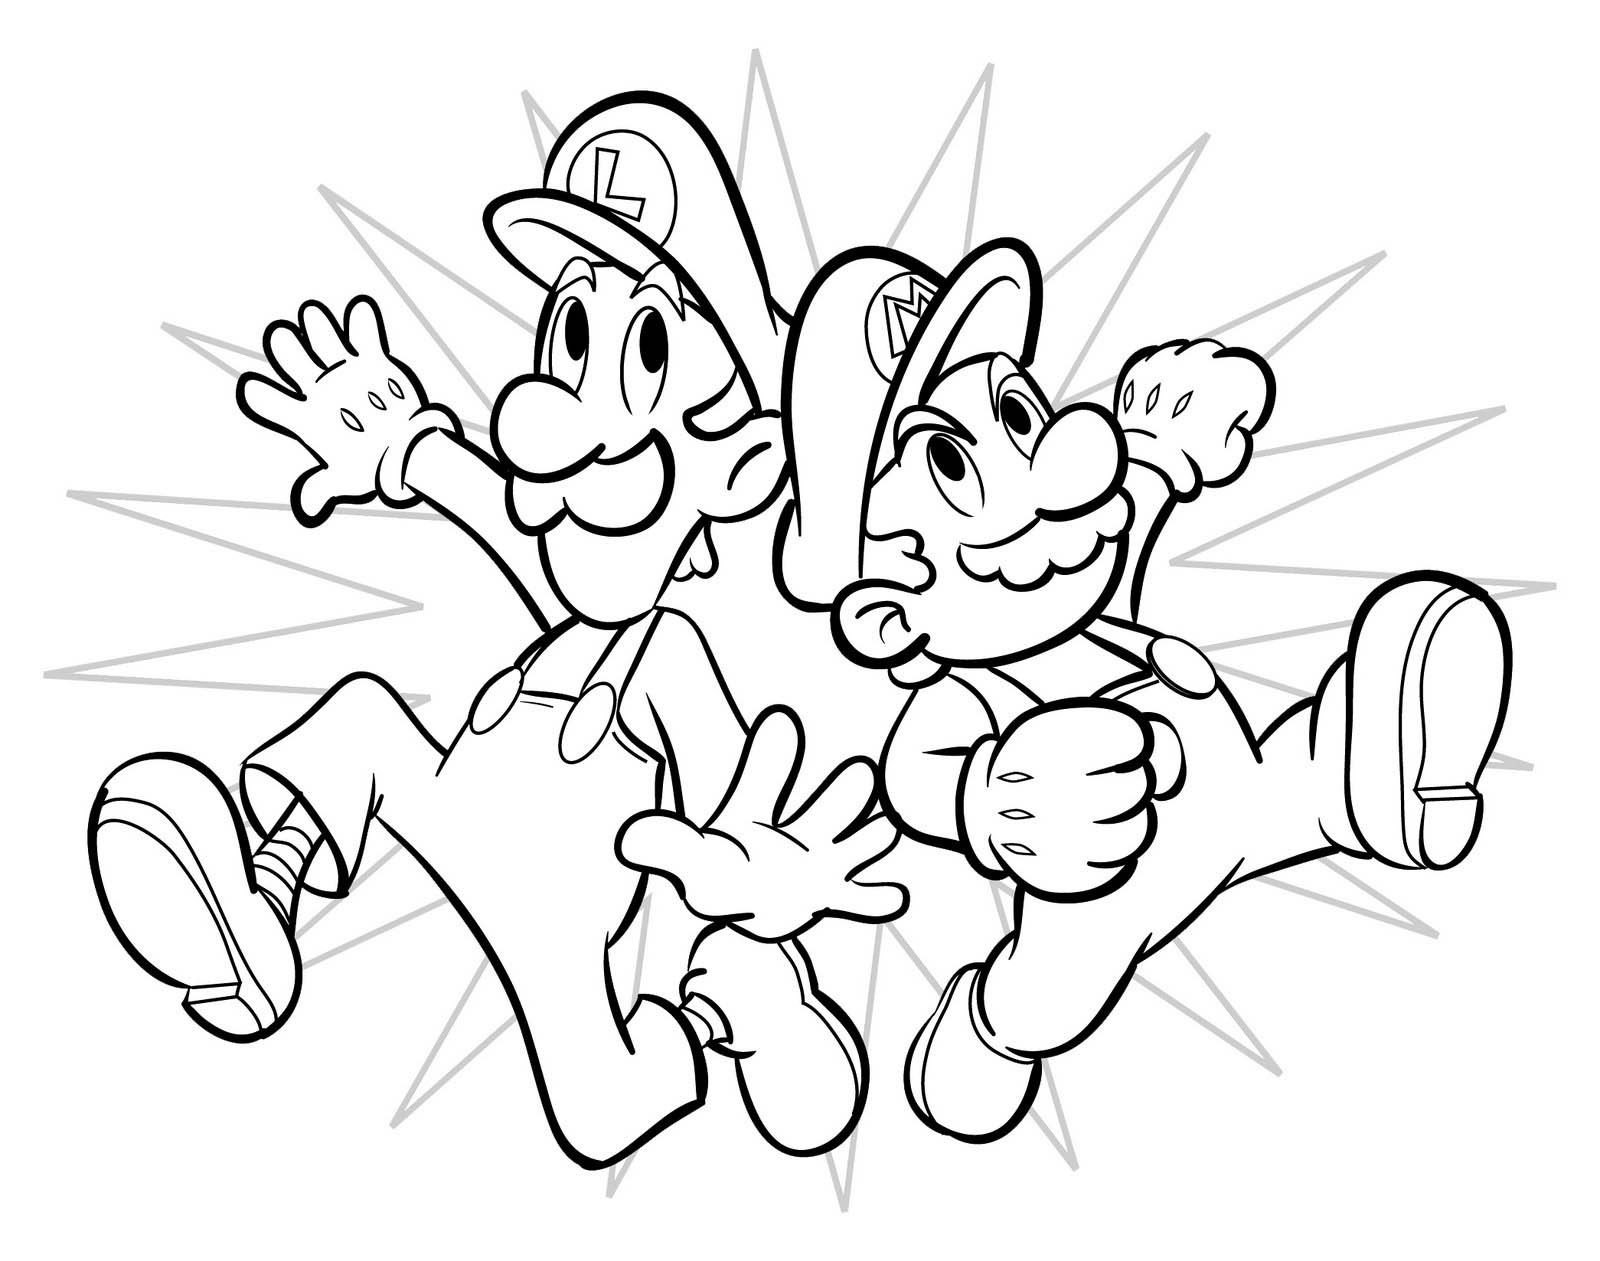 mario coloring pages to print - Kids Colouring Pages To Print